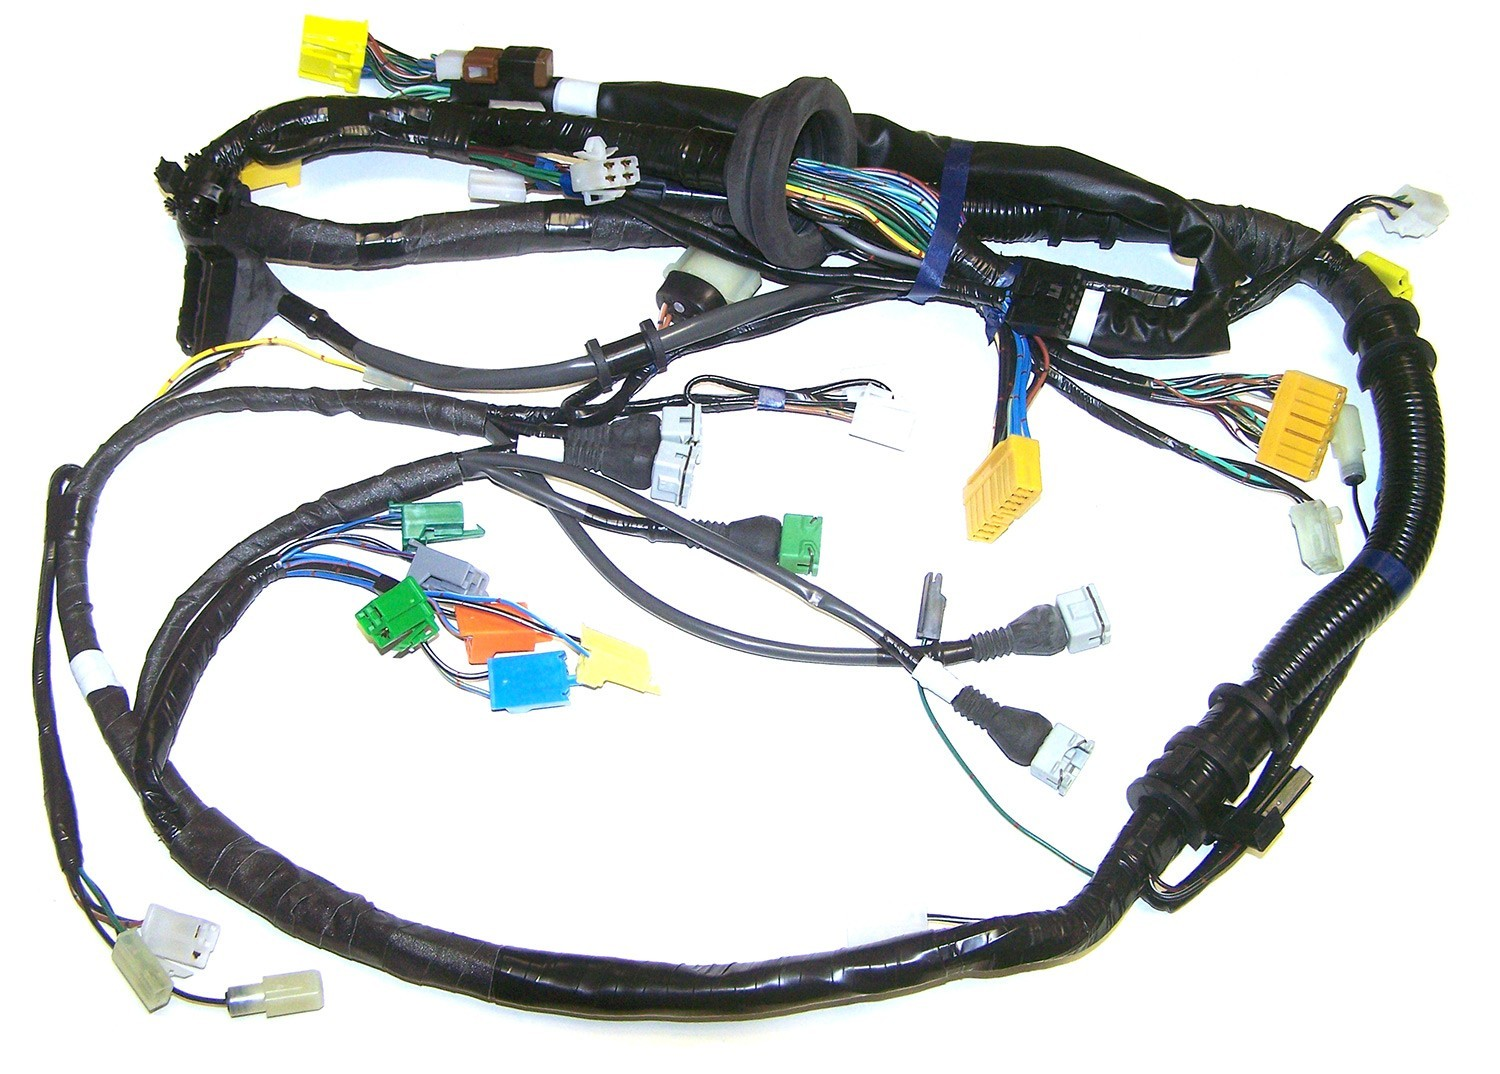 N332 18 051KDetail 87 88 turbo rx7 engine wiring harness (n332 18 051k) engine wiring harness at gsmx.co